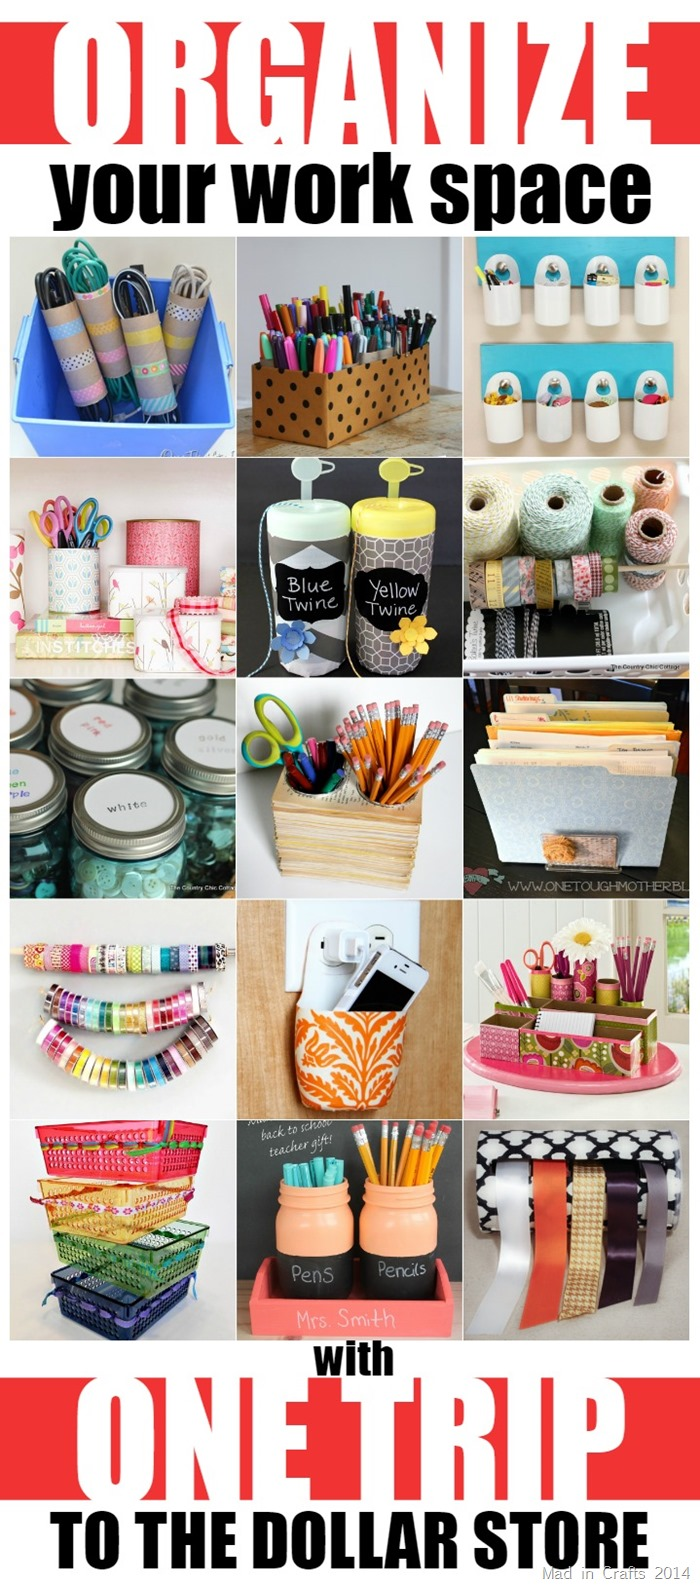 Organize Your Work Space with One Trip to the Dollar Store